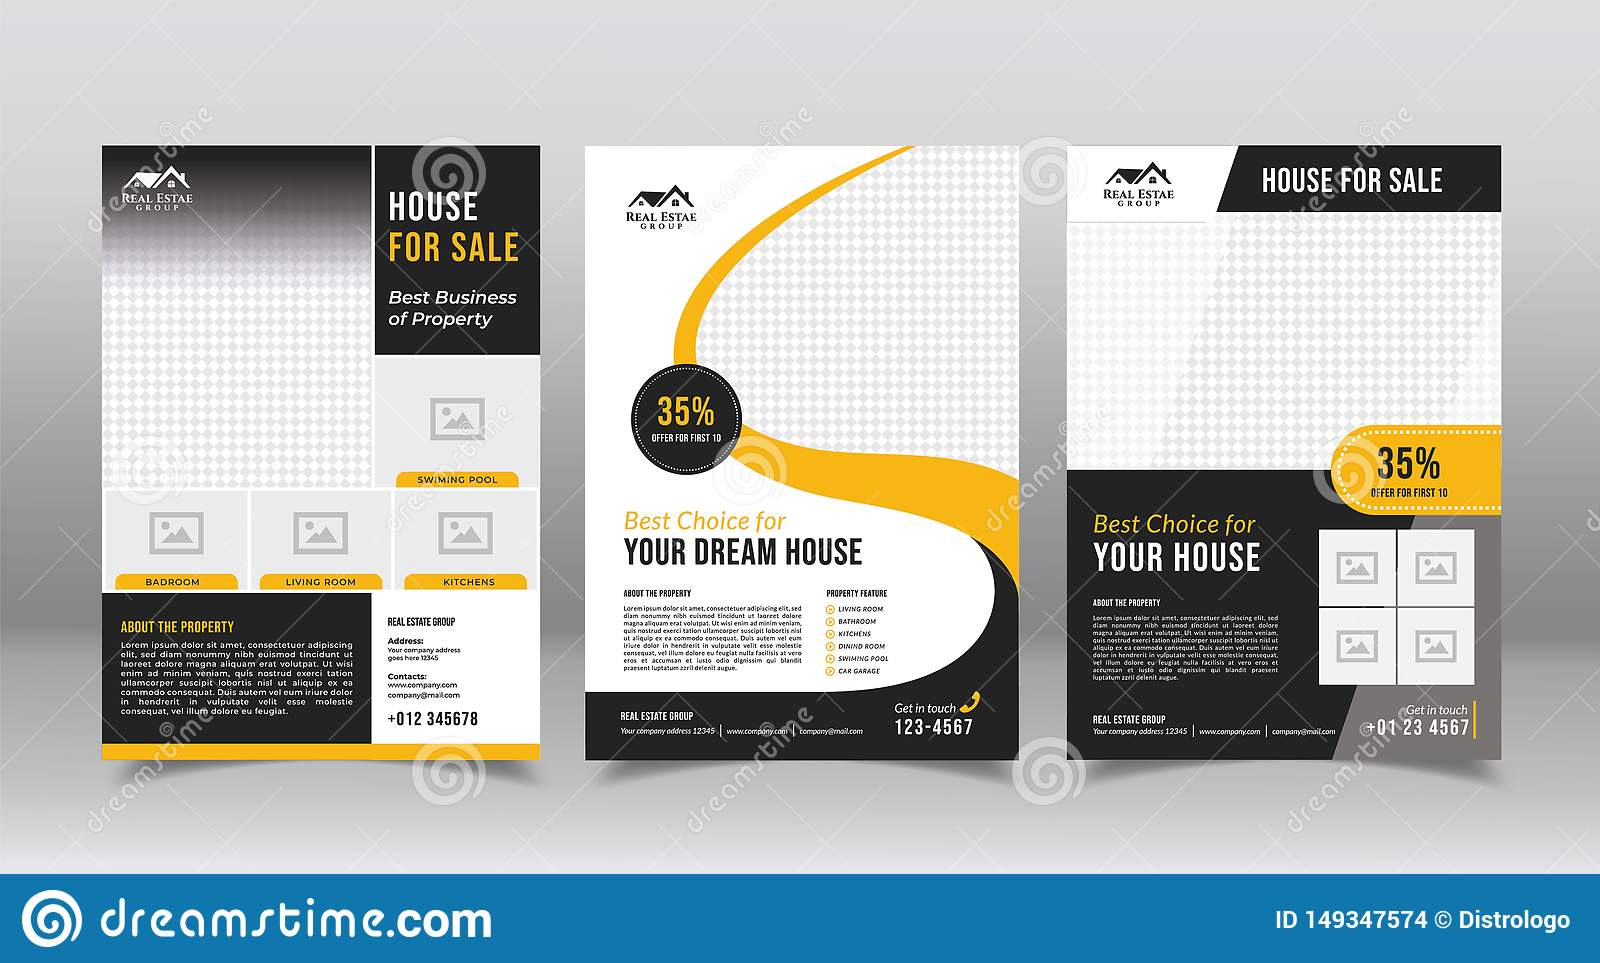 Geometric Real Estate Brochure Design Template Business Flyer Brochure Designs Template Stock Vector Illustration Of Magazine Business 149347574